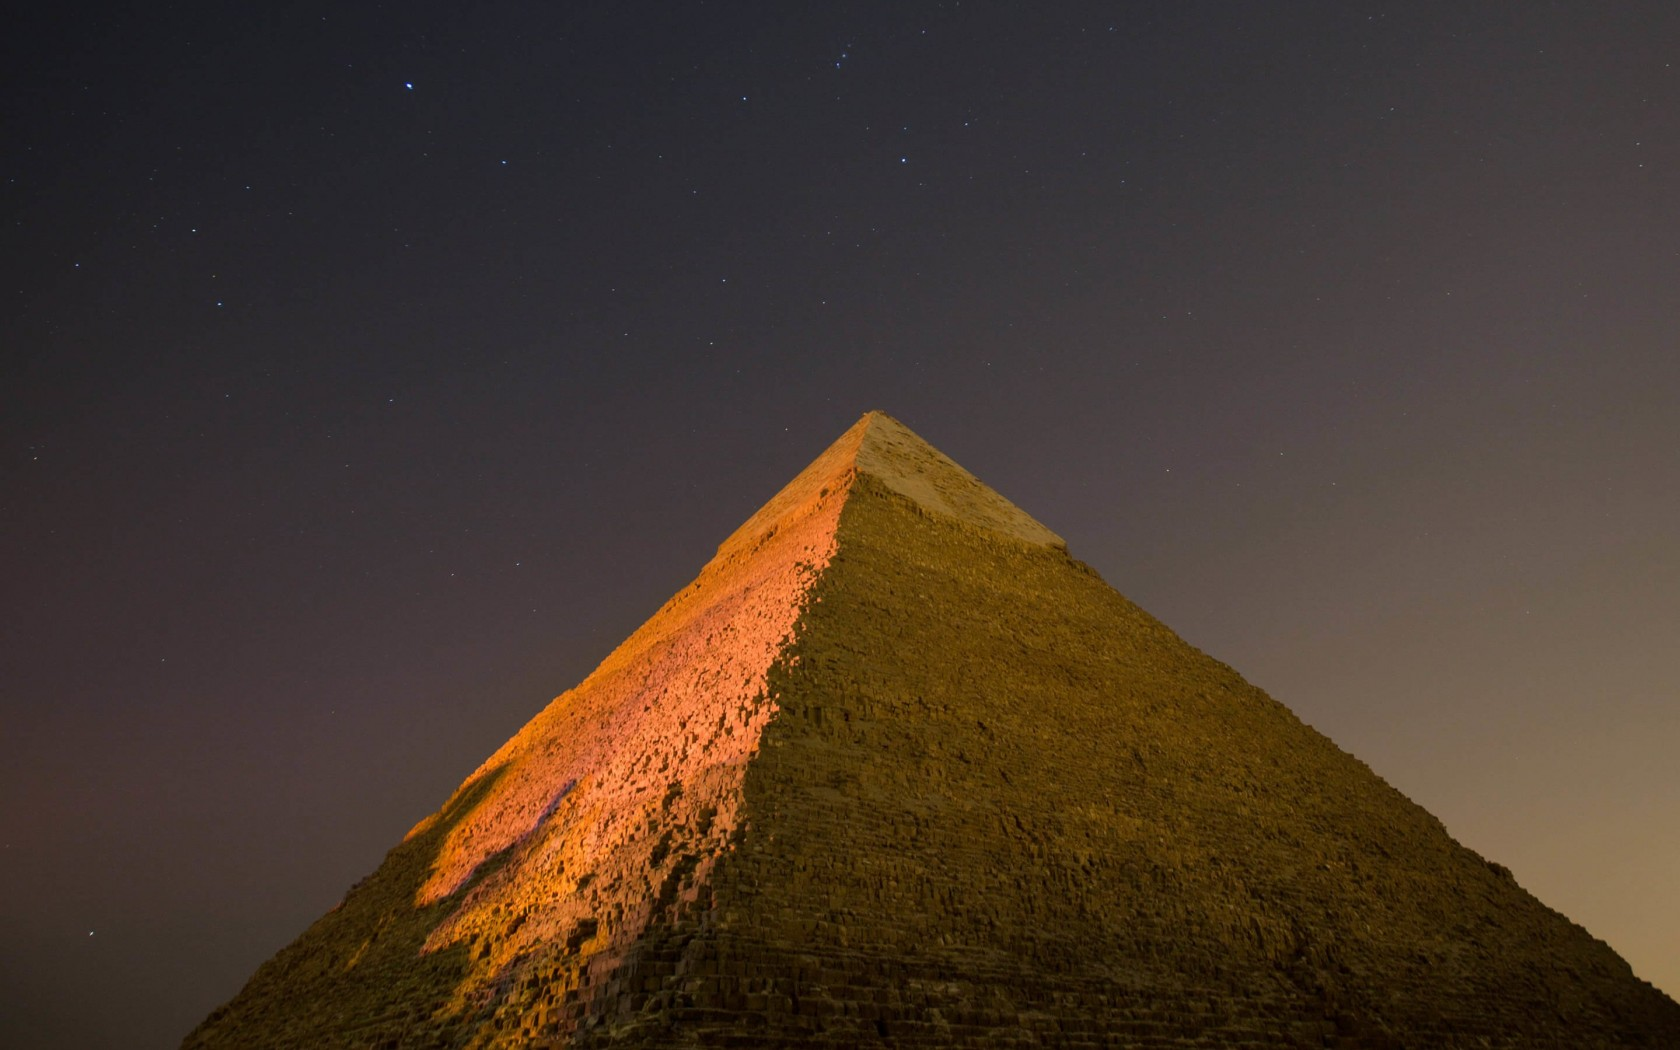 Pyramid by Night Wallpaper for Desktop 1680x1050